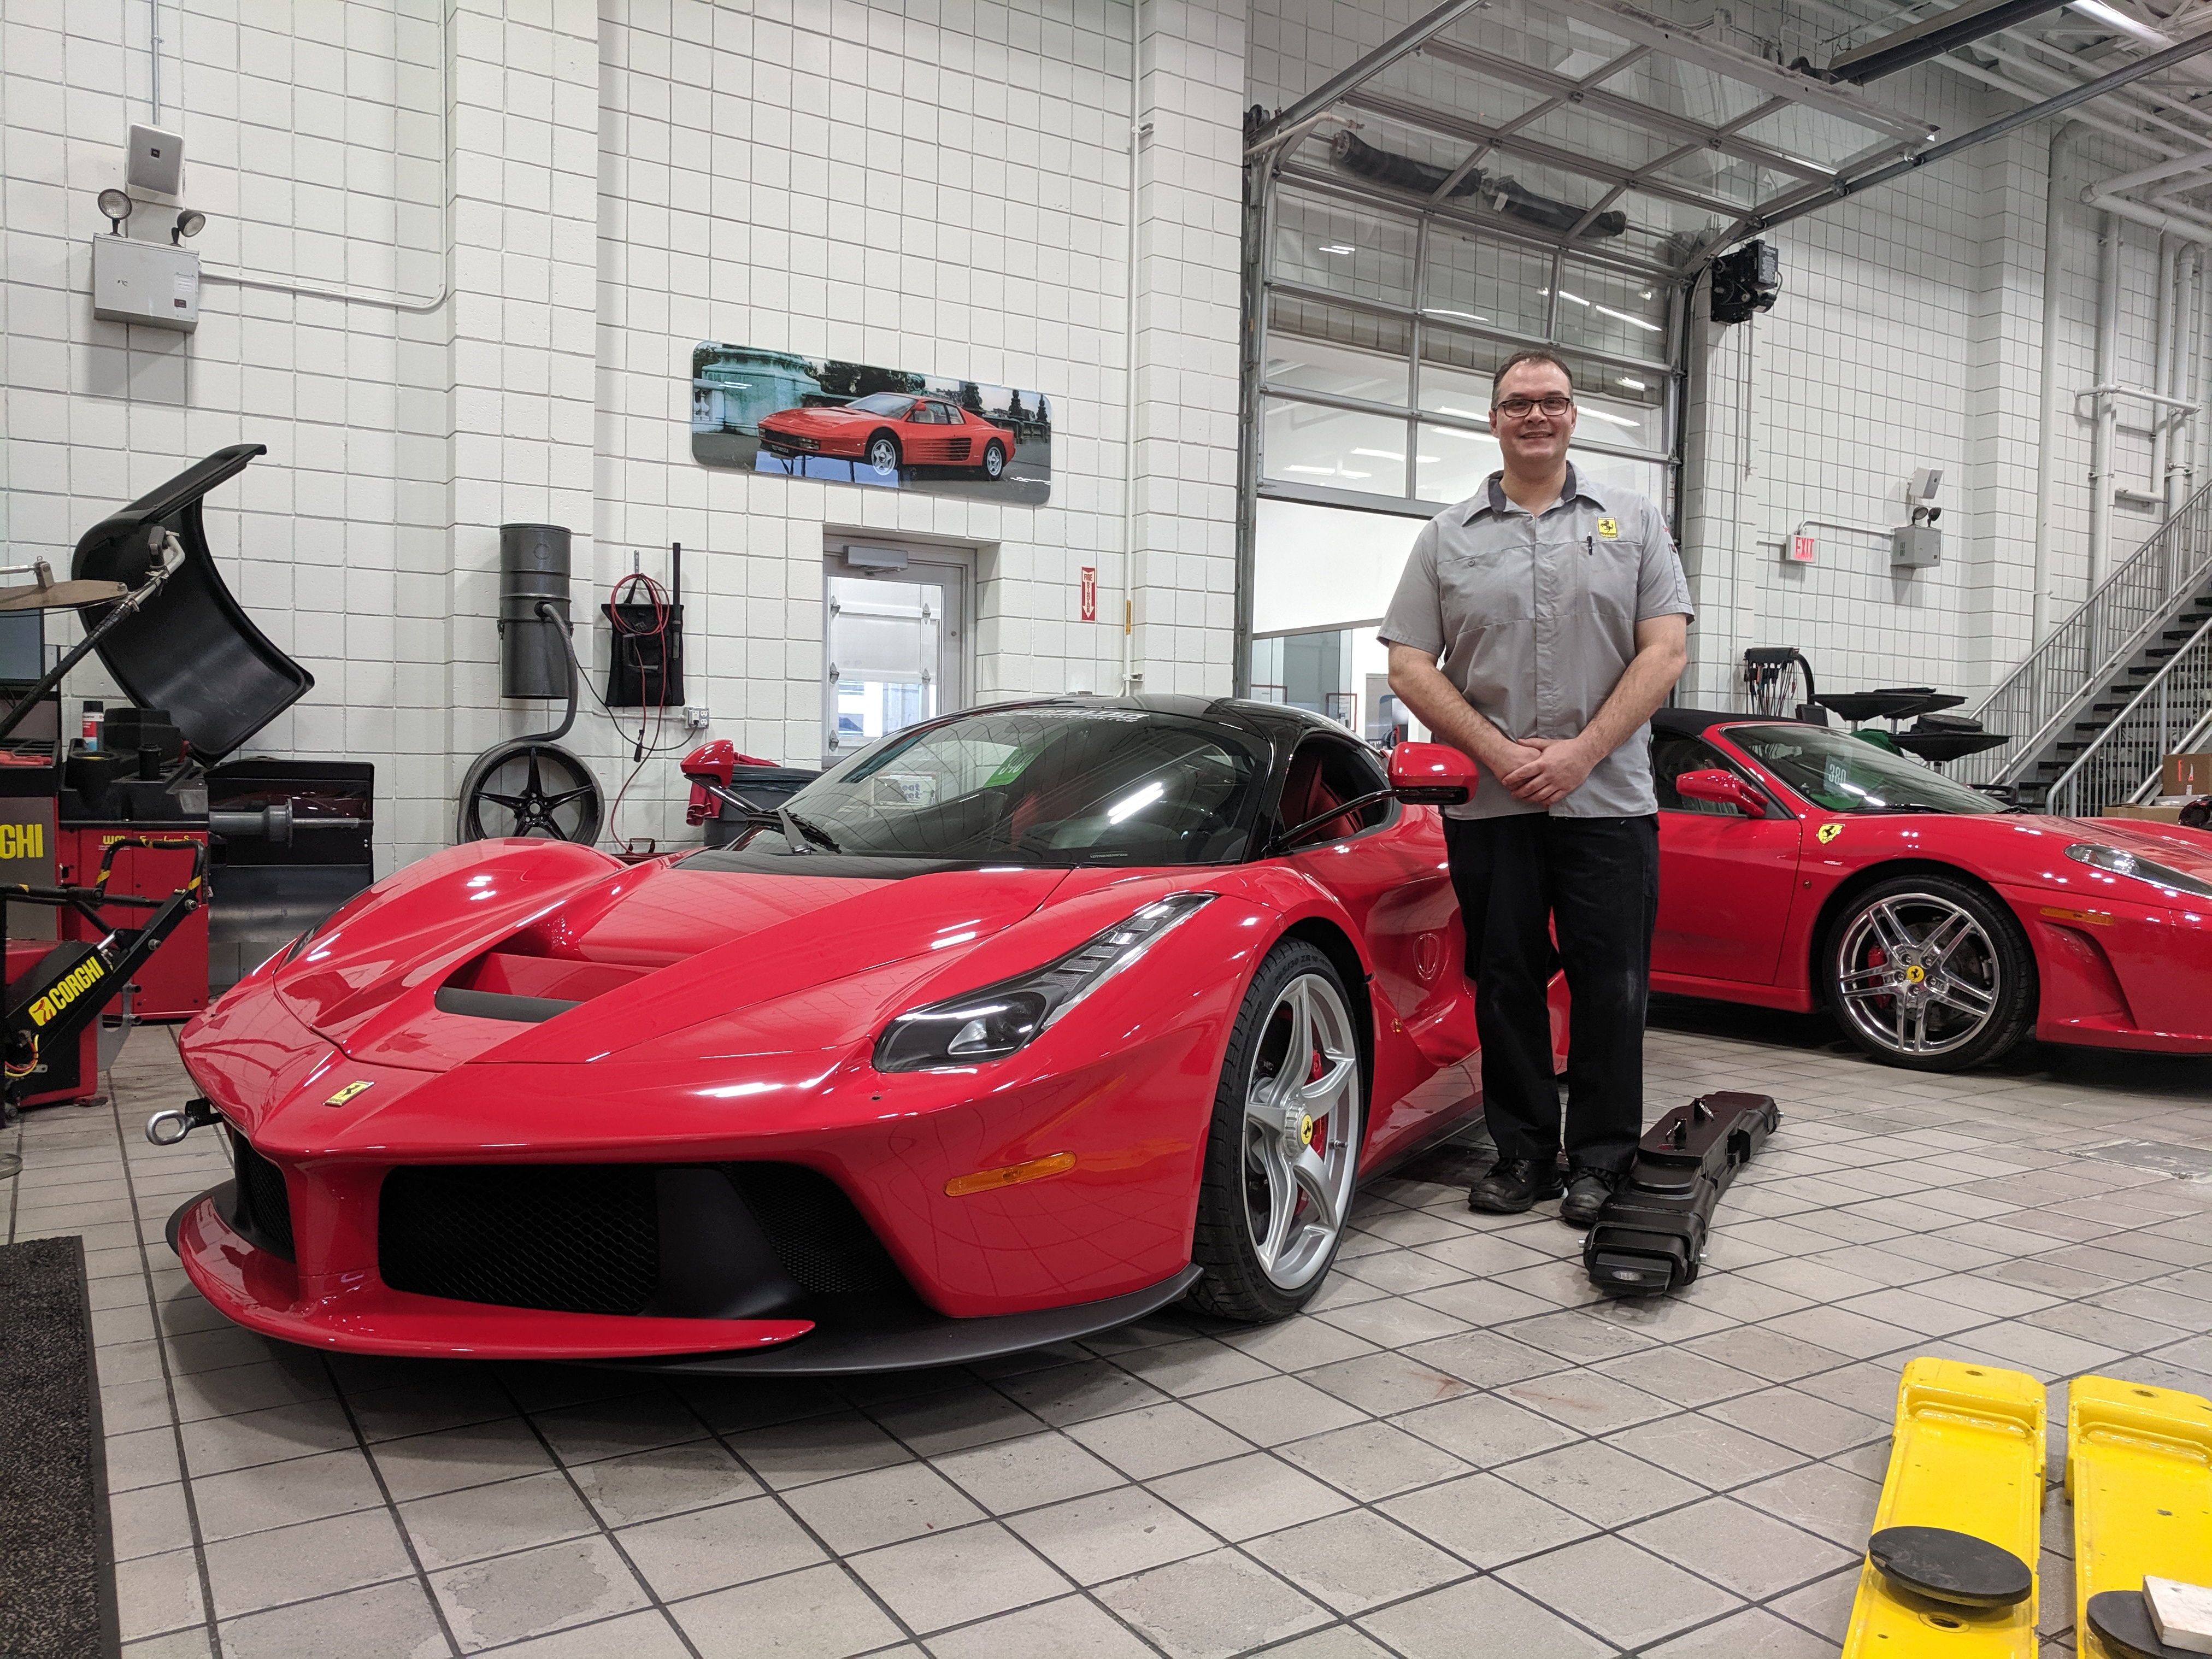 Salter prepares to work on a 2015 Ferrari LaFerrari hybrid—part of the Lingenfelter Collection and one of just 300 sold in the U.S.